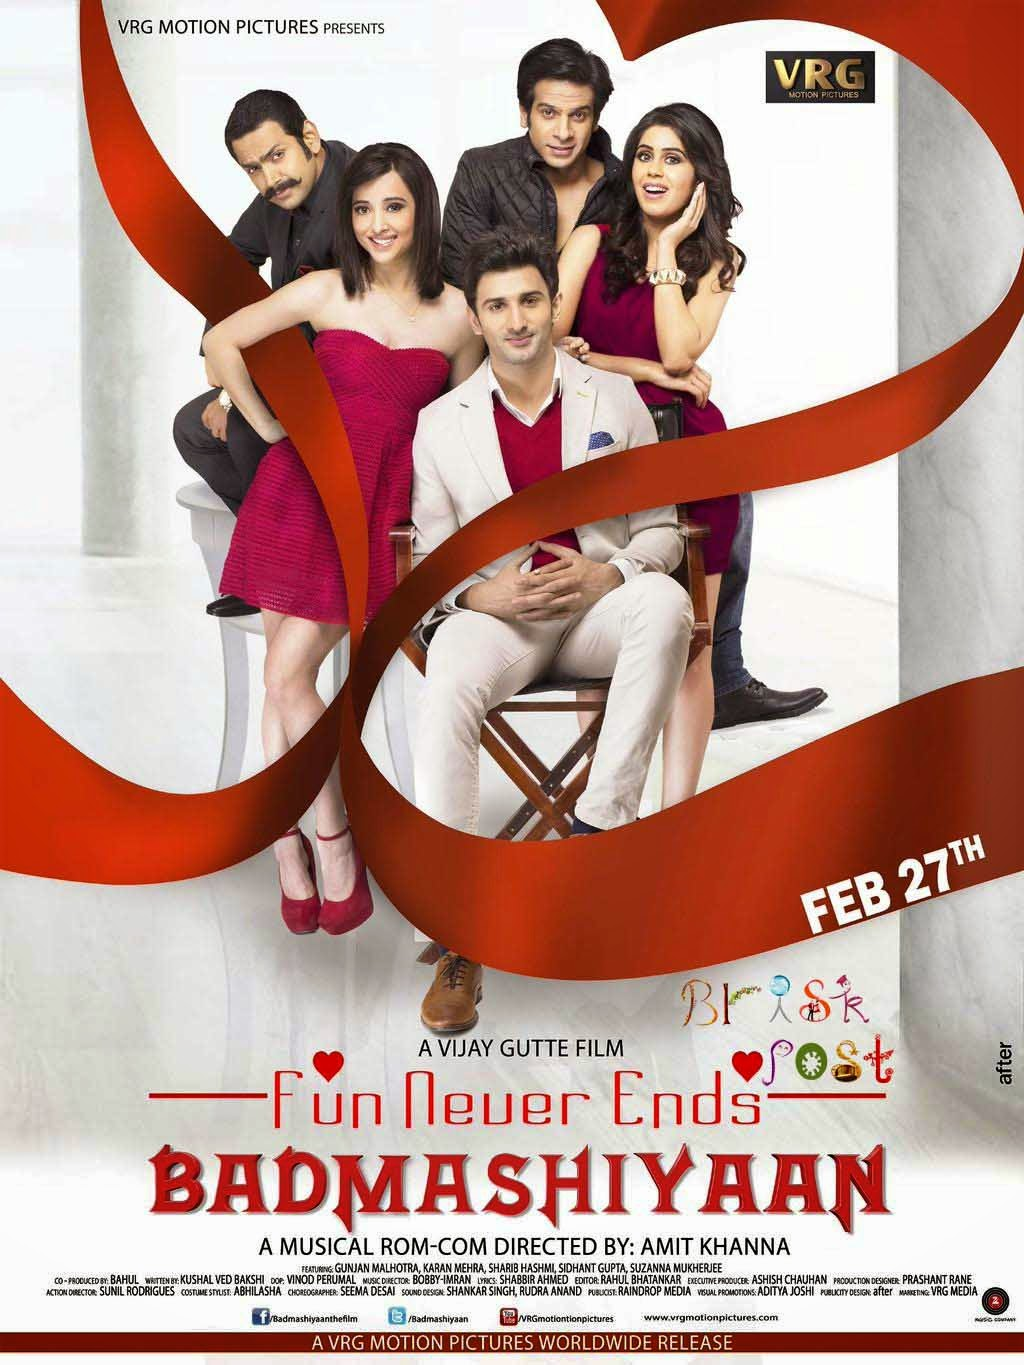 Badmashiyaan movie poster features the star cast